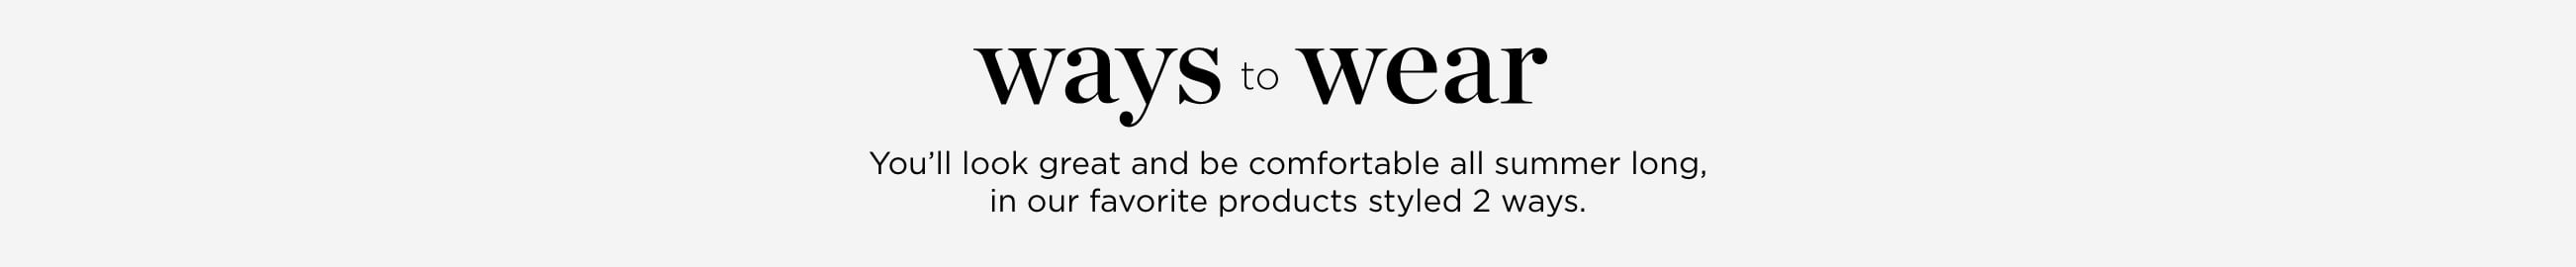 Ways-to-Wear. You'll look great and be comfortable all summer long, in our favorite products styled two ways.